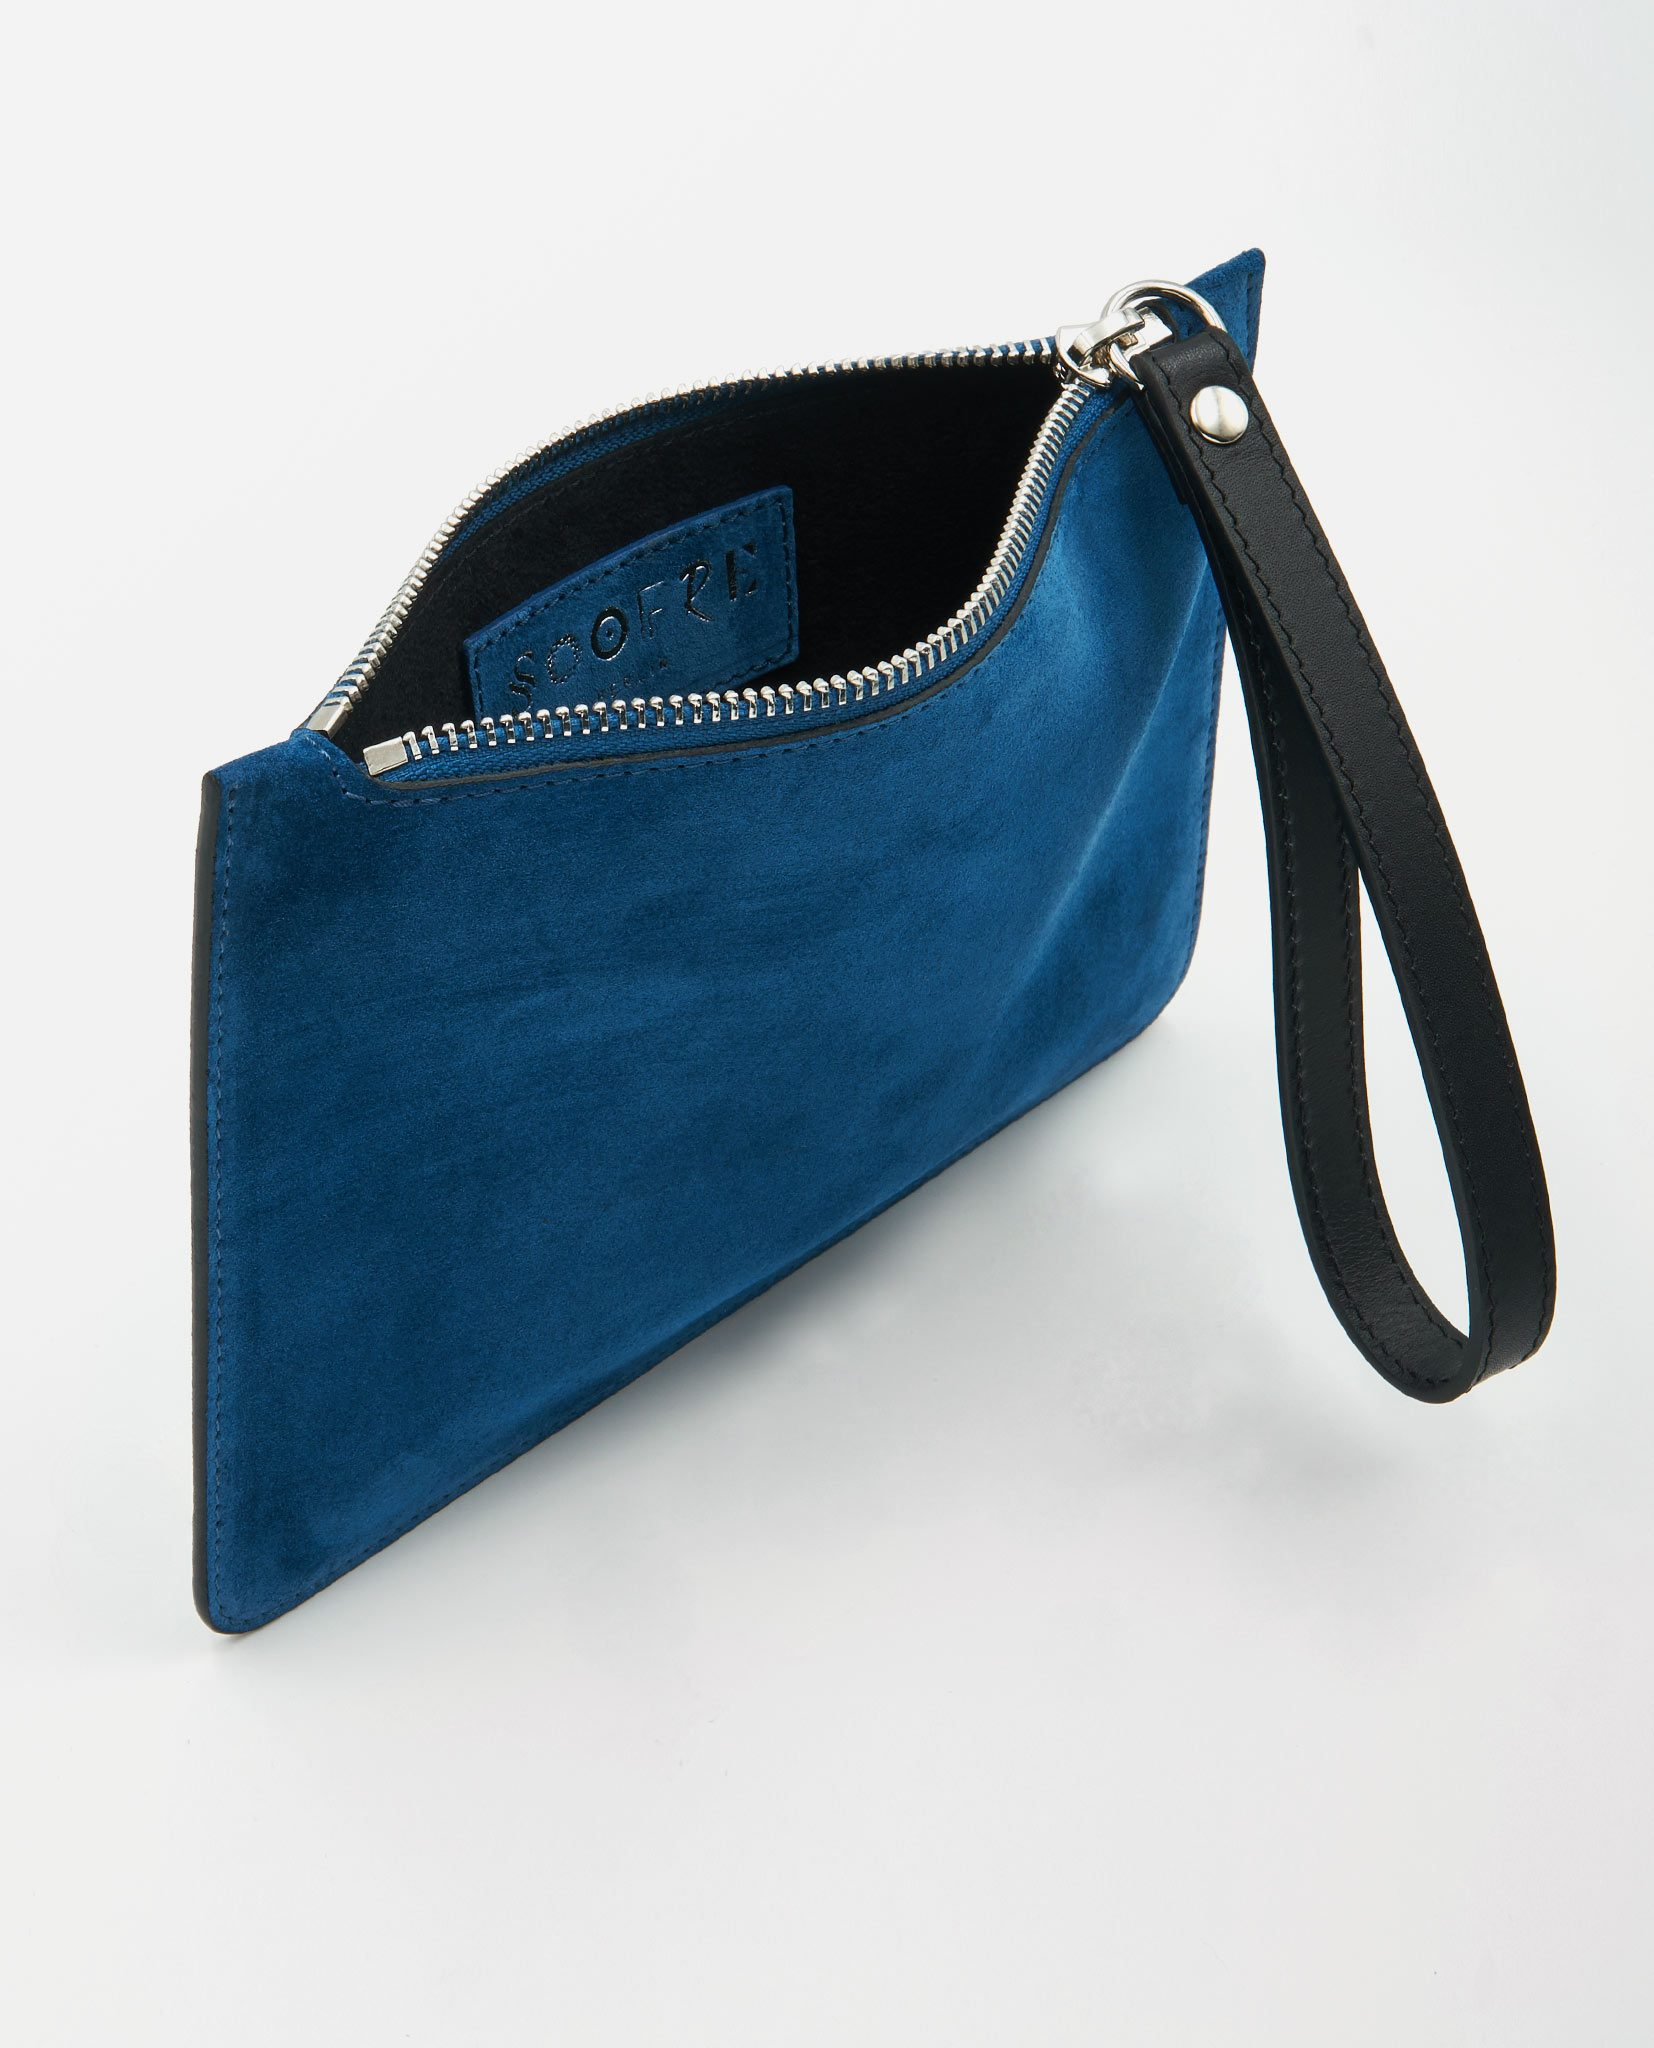 Soofre_Small-Pouch_Sapphire-Blue-Black_2